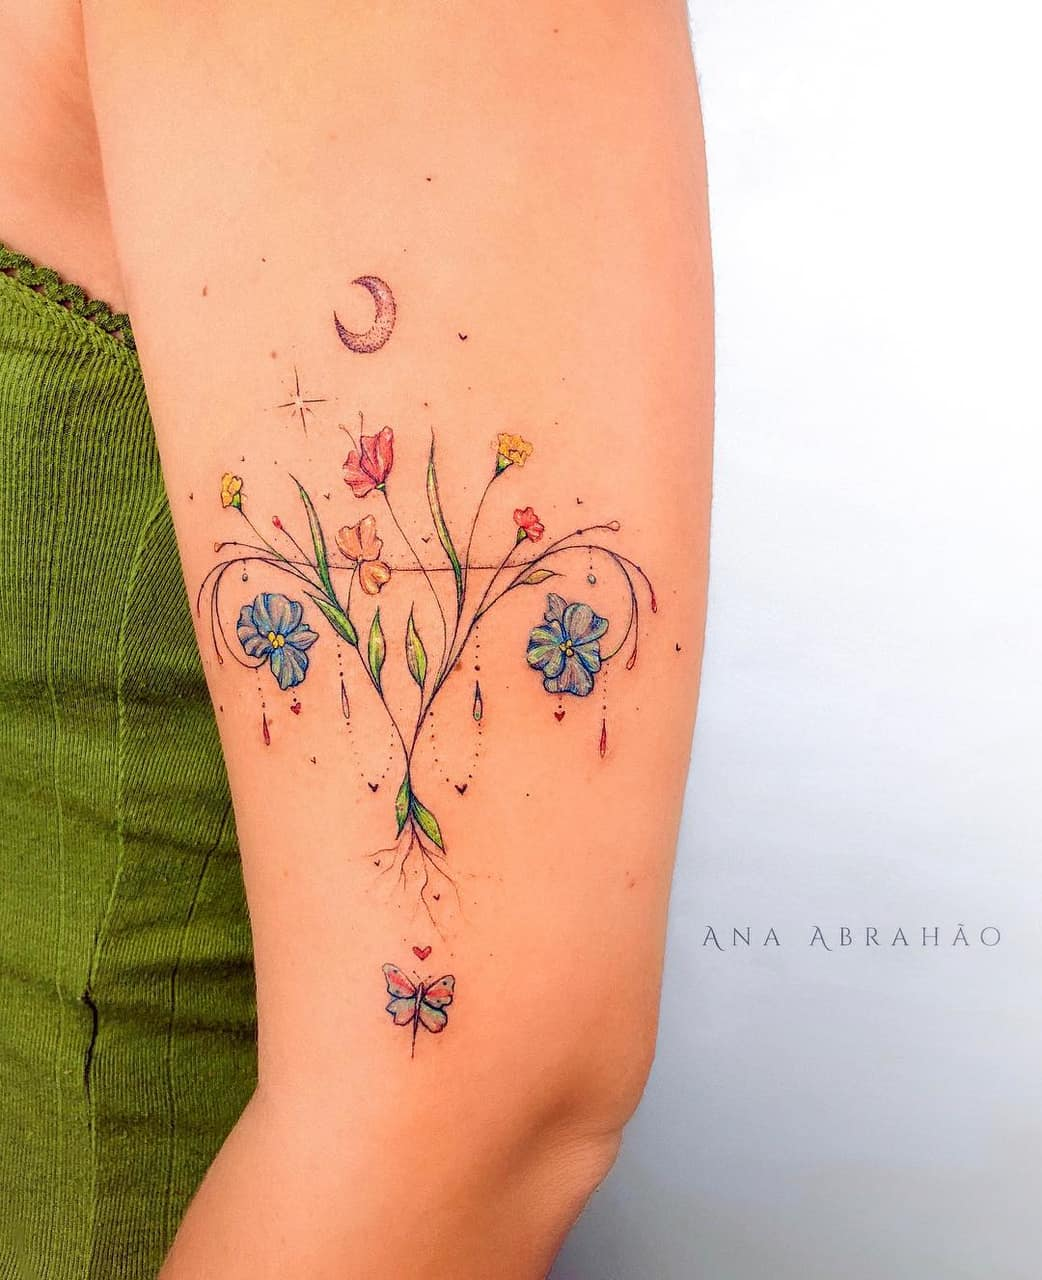 abrahaoana, ana abrahao, body art and colortattoo – image #7669156 on Favim.com